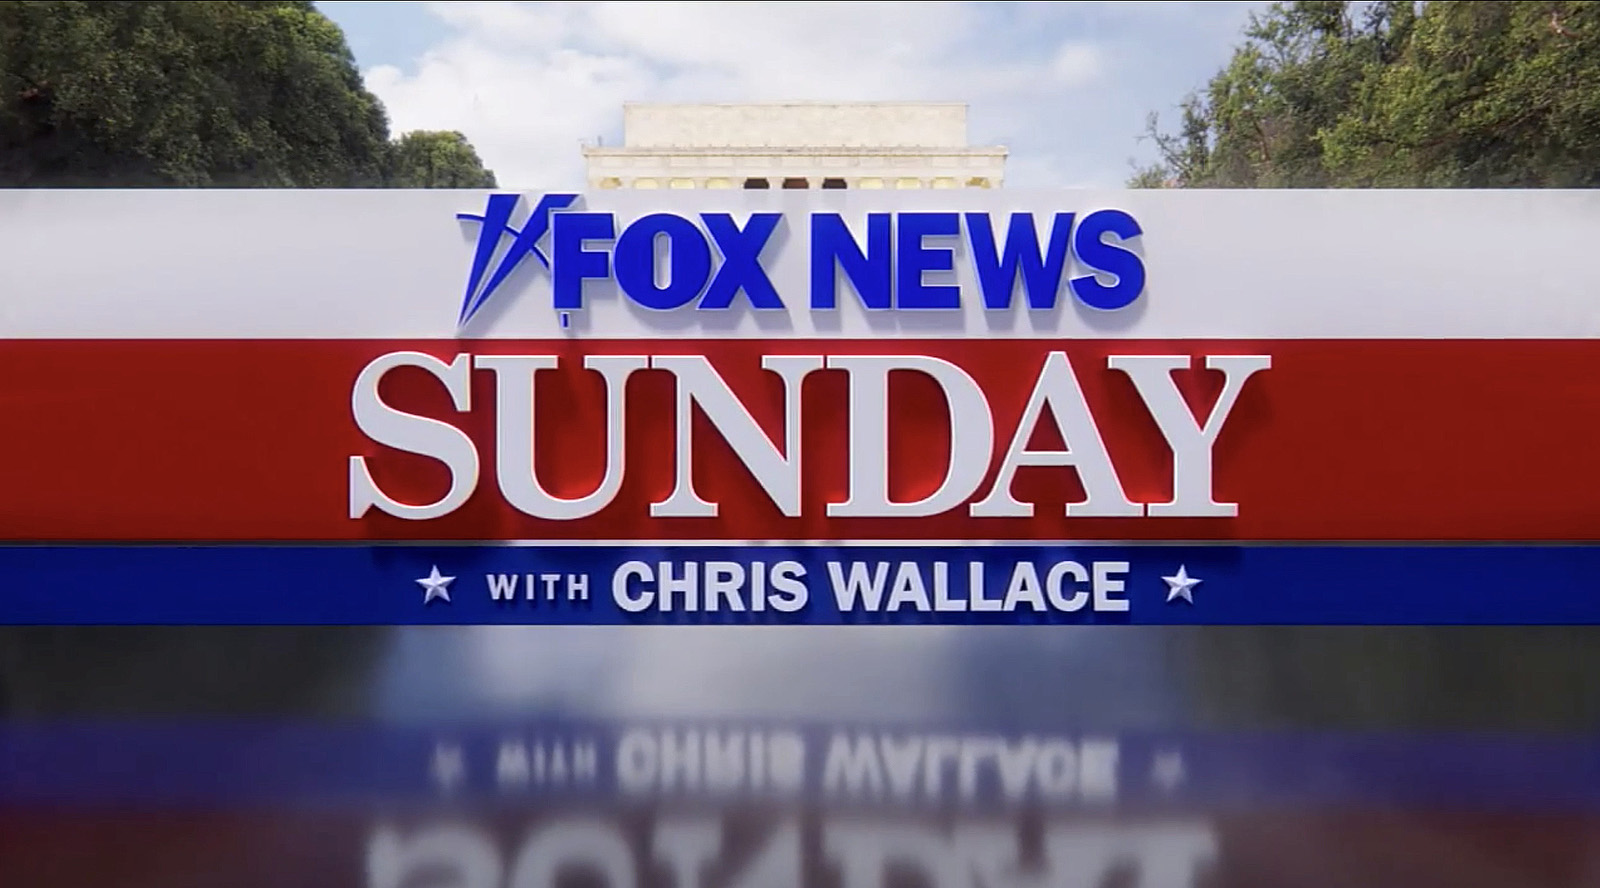 NCS_Fox-News-Sunday_2019_Motion-Graphics_001